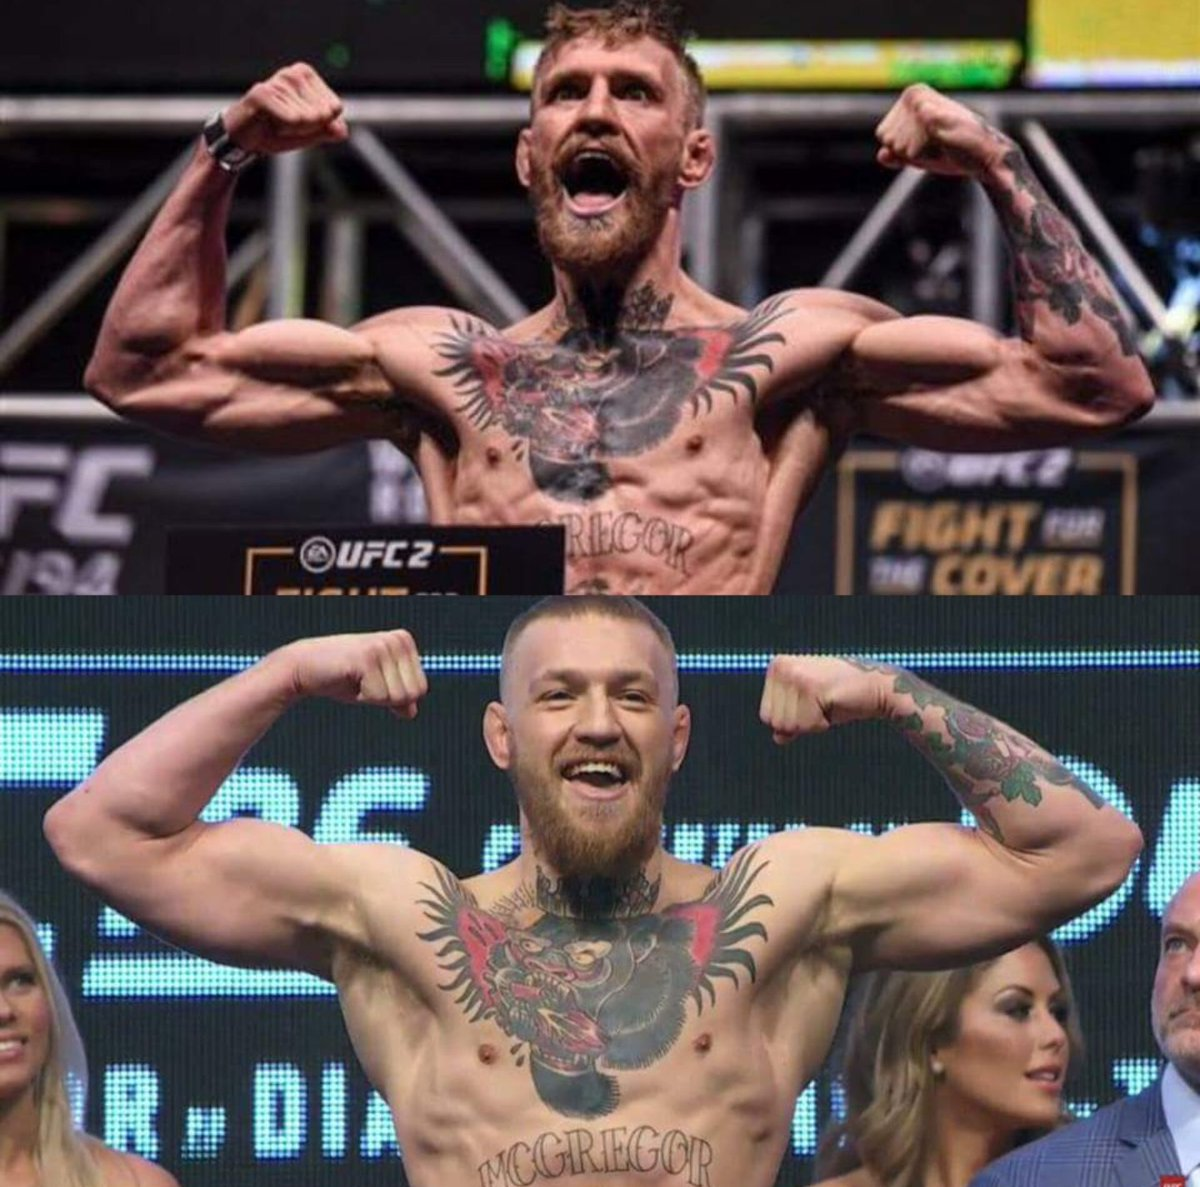 One thing I'll never forget about covering UFC 196 was the massive difference in Conor McGregor weighing 145lbs for the Jose Aldo fight just a few months prior vs. weighing in at 168lbs for the Nate Diaz fight. Crazy that it's already been 5 years since this event.